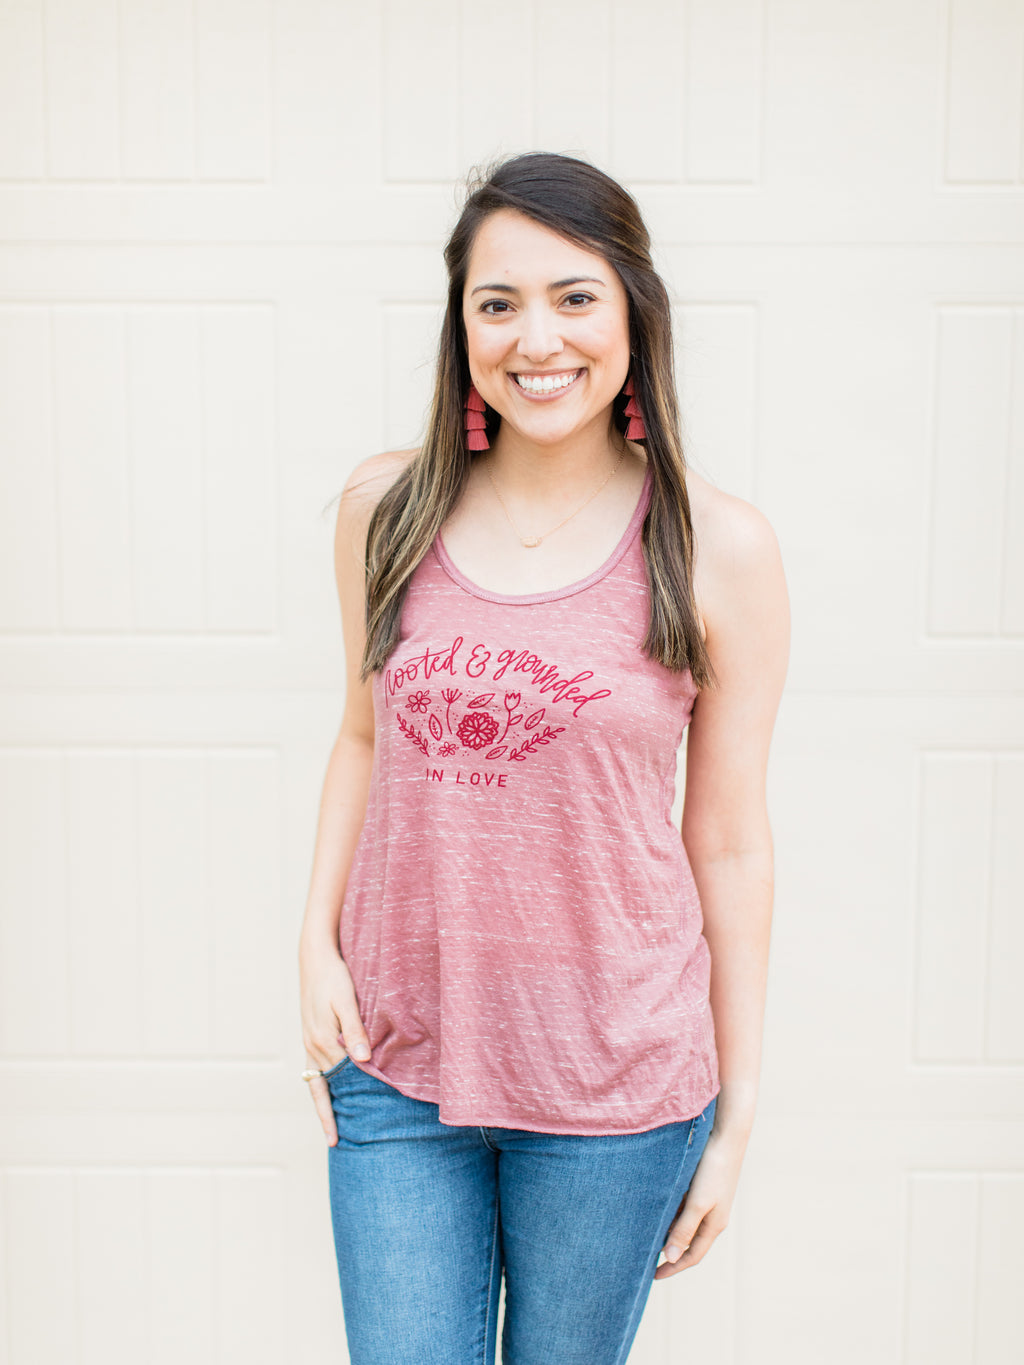 Rooted & Grounded in Love Christian Tank Top - Marble Mauve